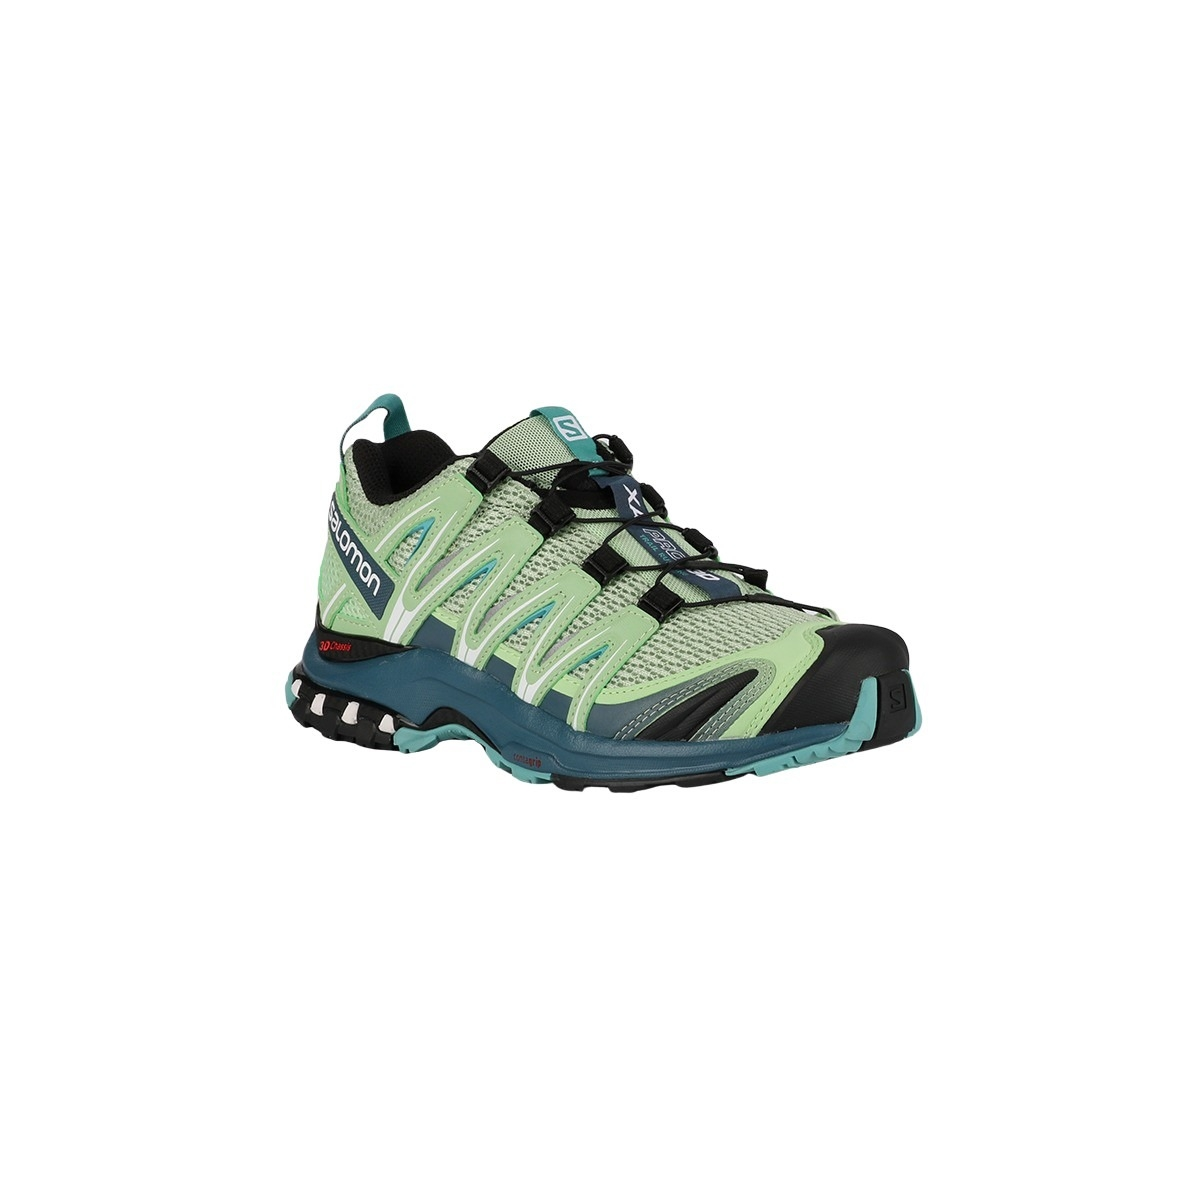 Salomon Zapatilla XA PRO 3D W Spruce Stone Indian Teal Meadowbrook Verde Mujer